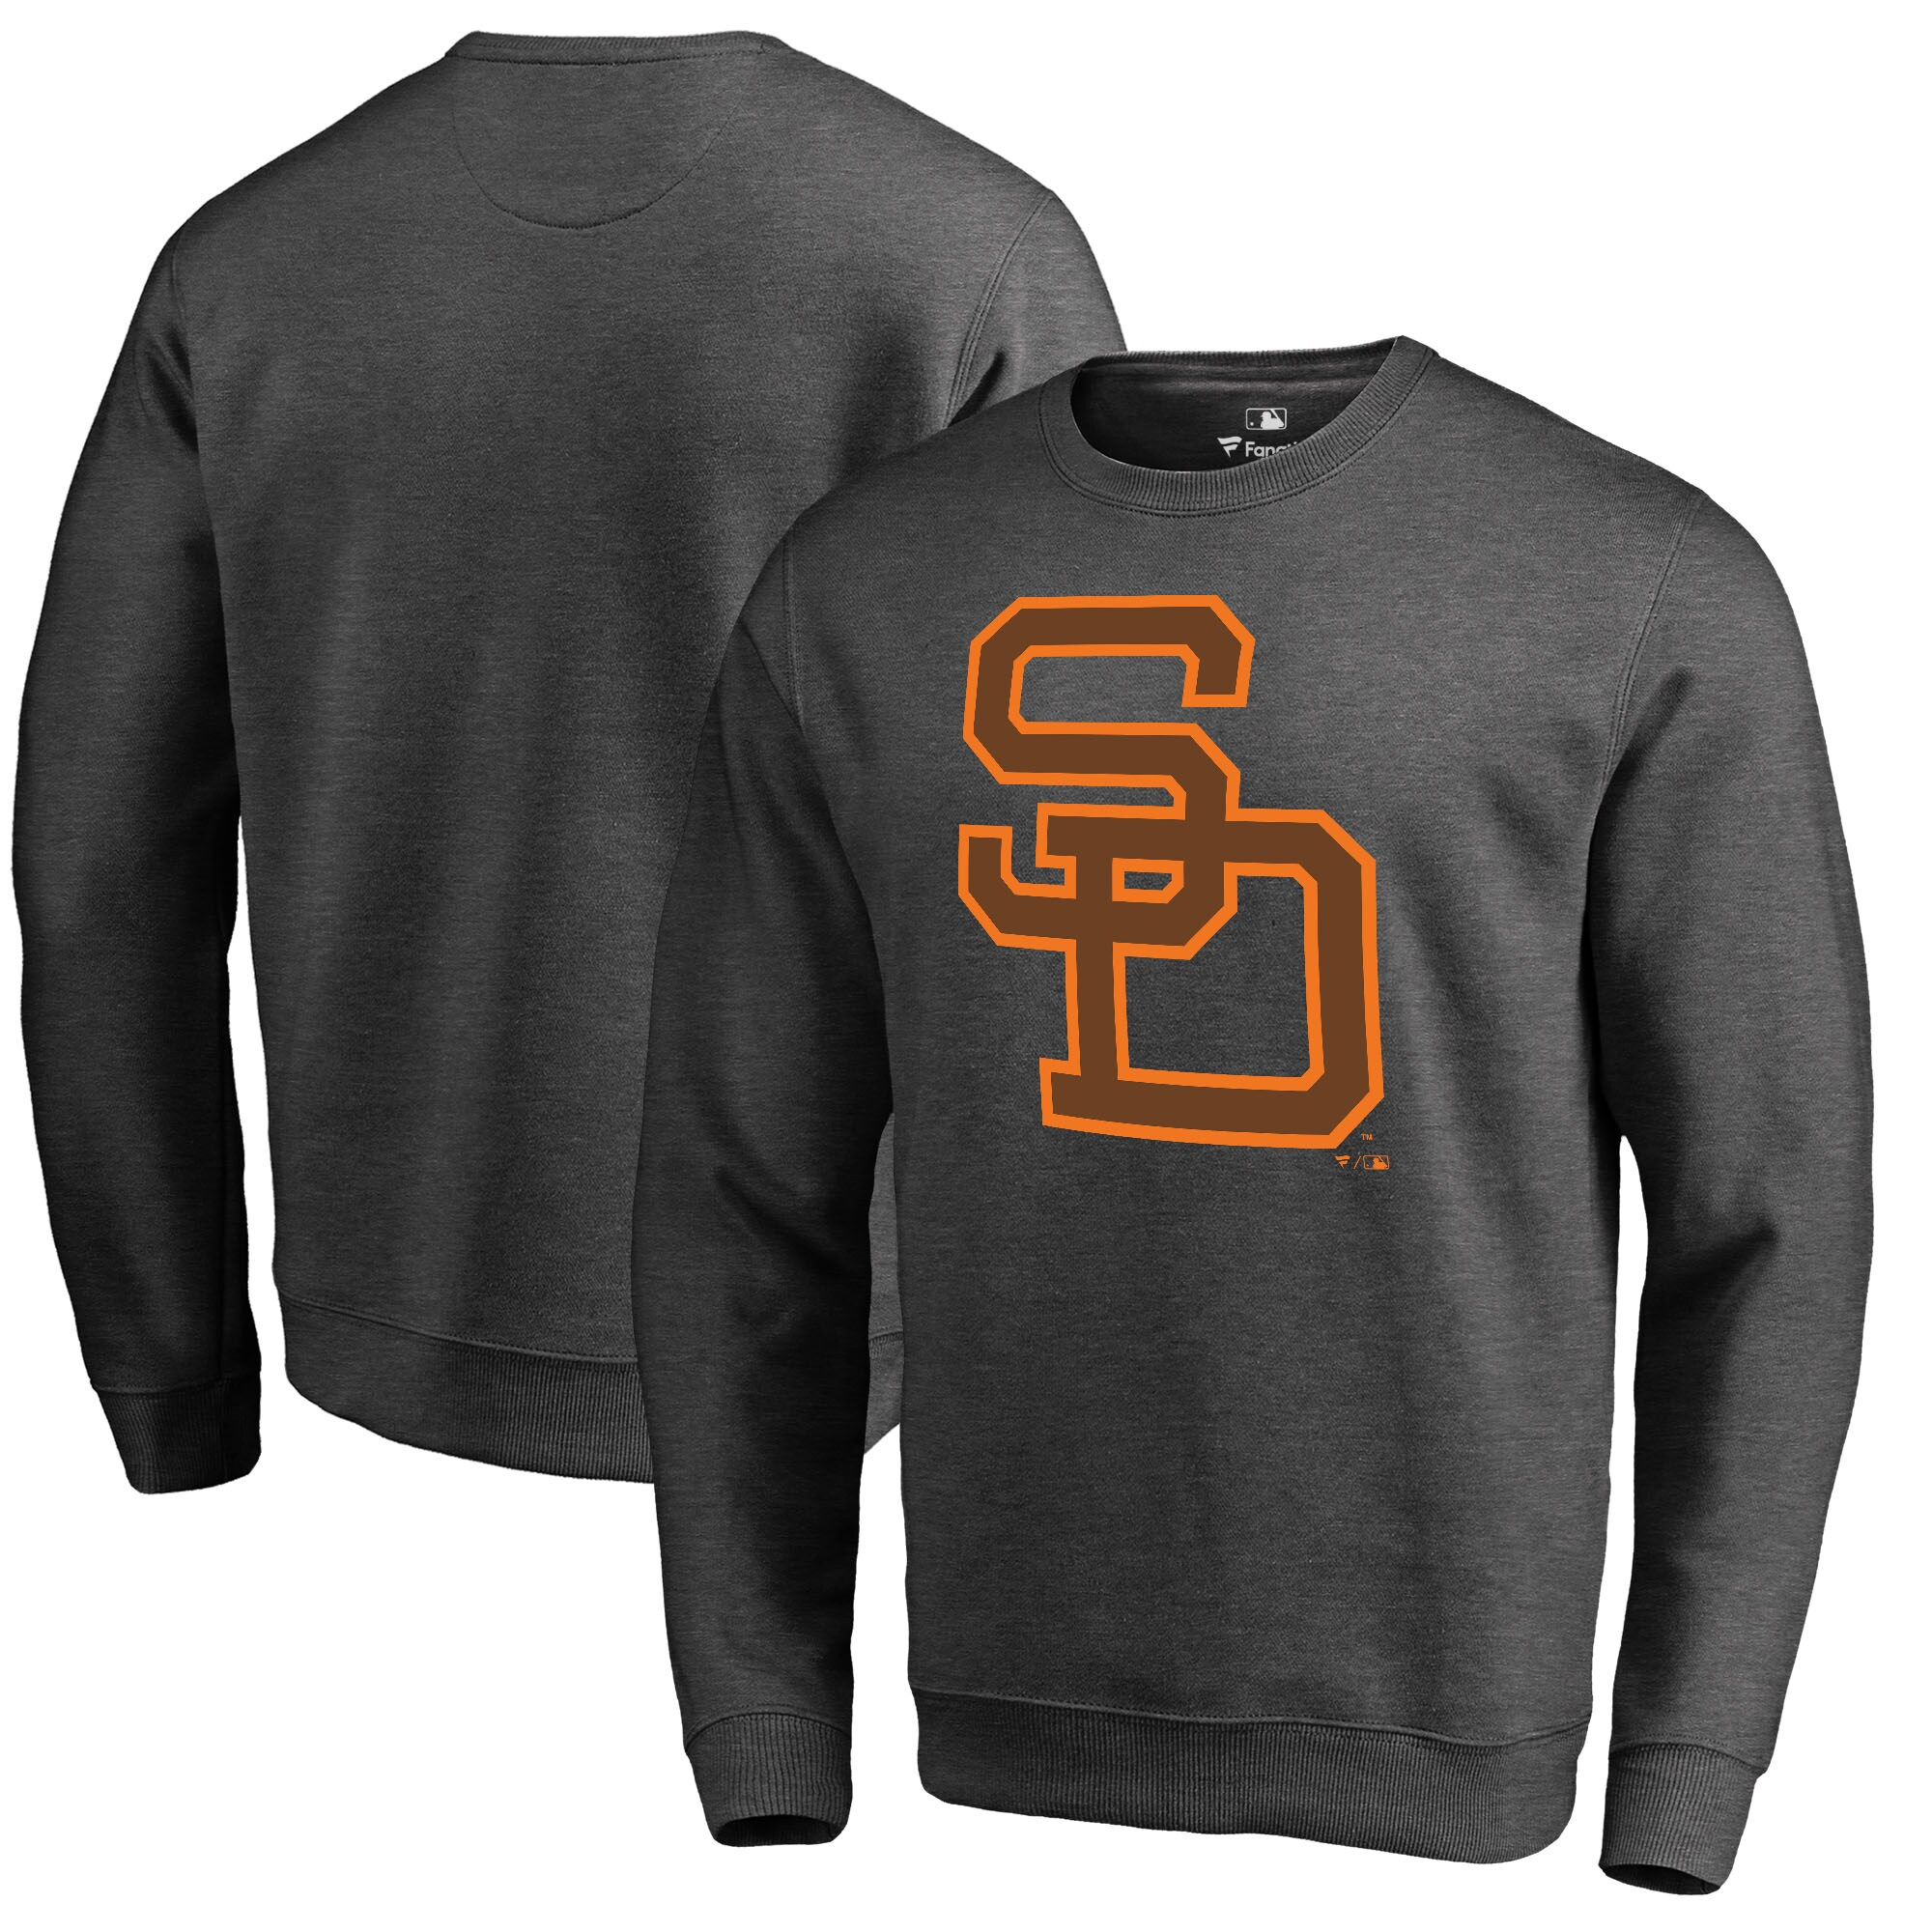 San Diego Padres Fanatics Branded Cooperstown Collection Huntington Sweatshirt - Heathered Gray